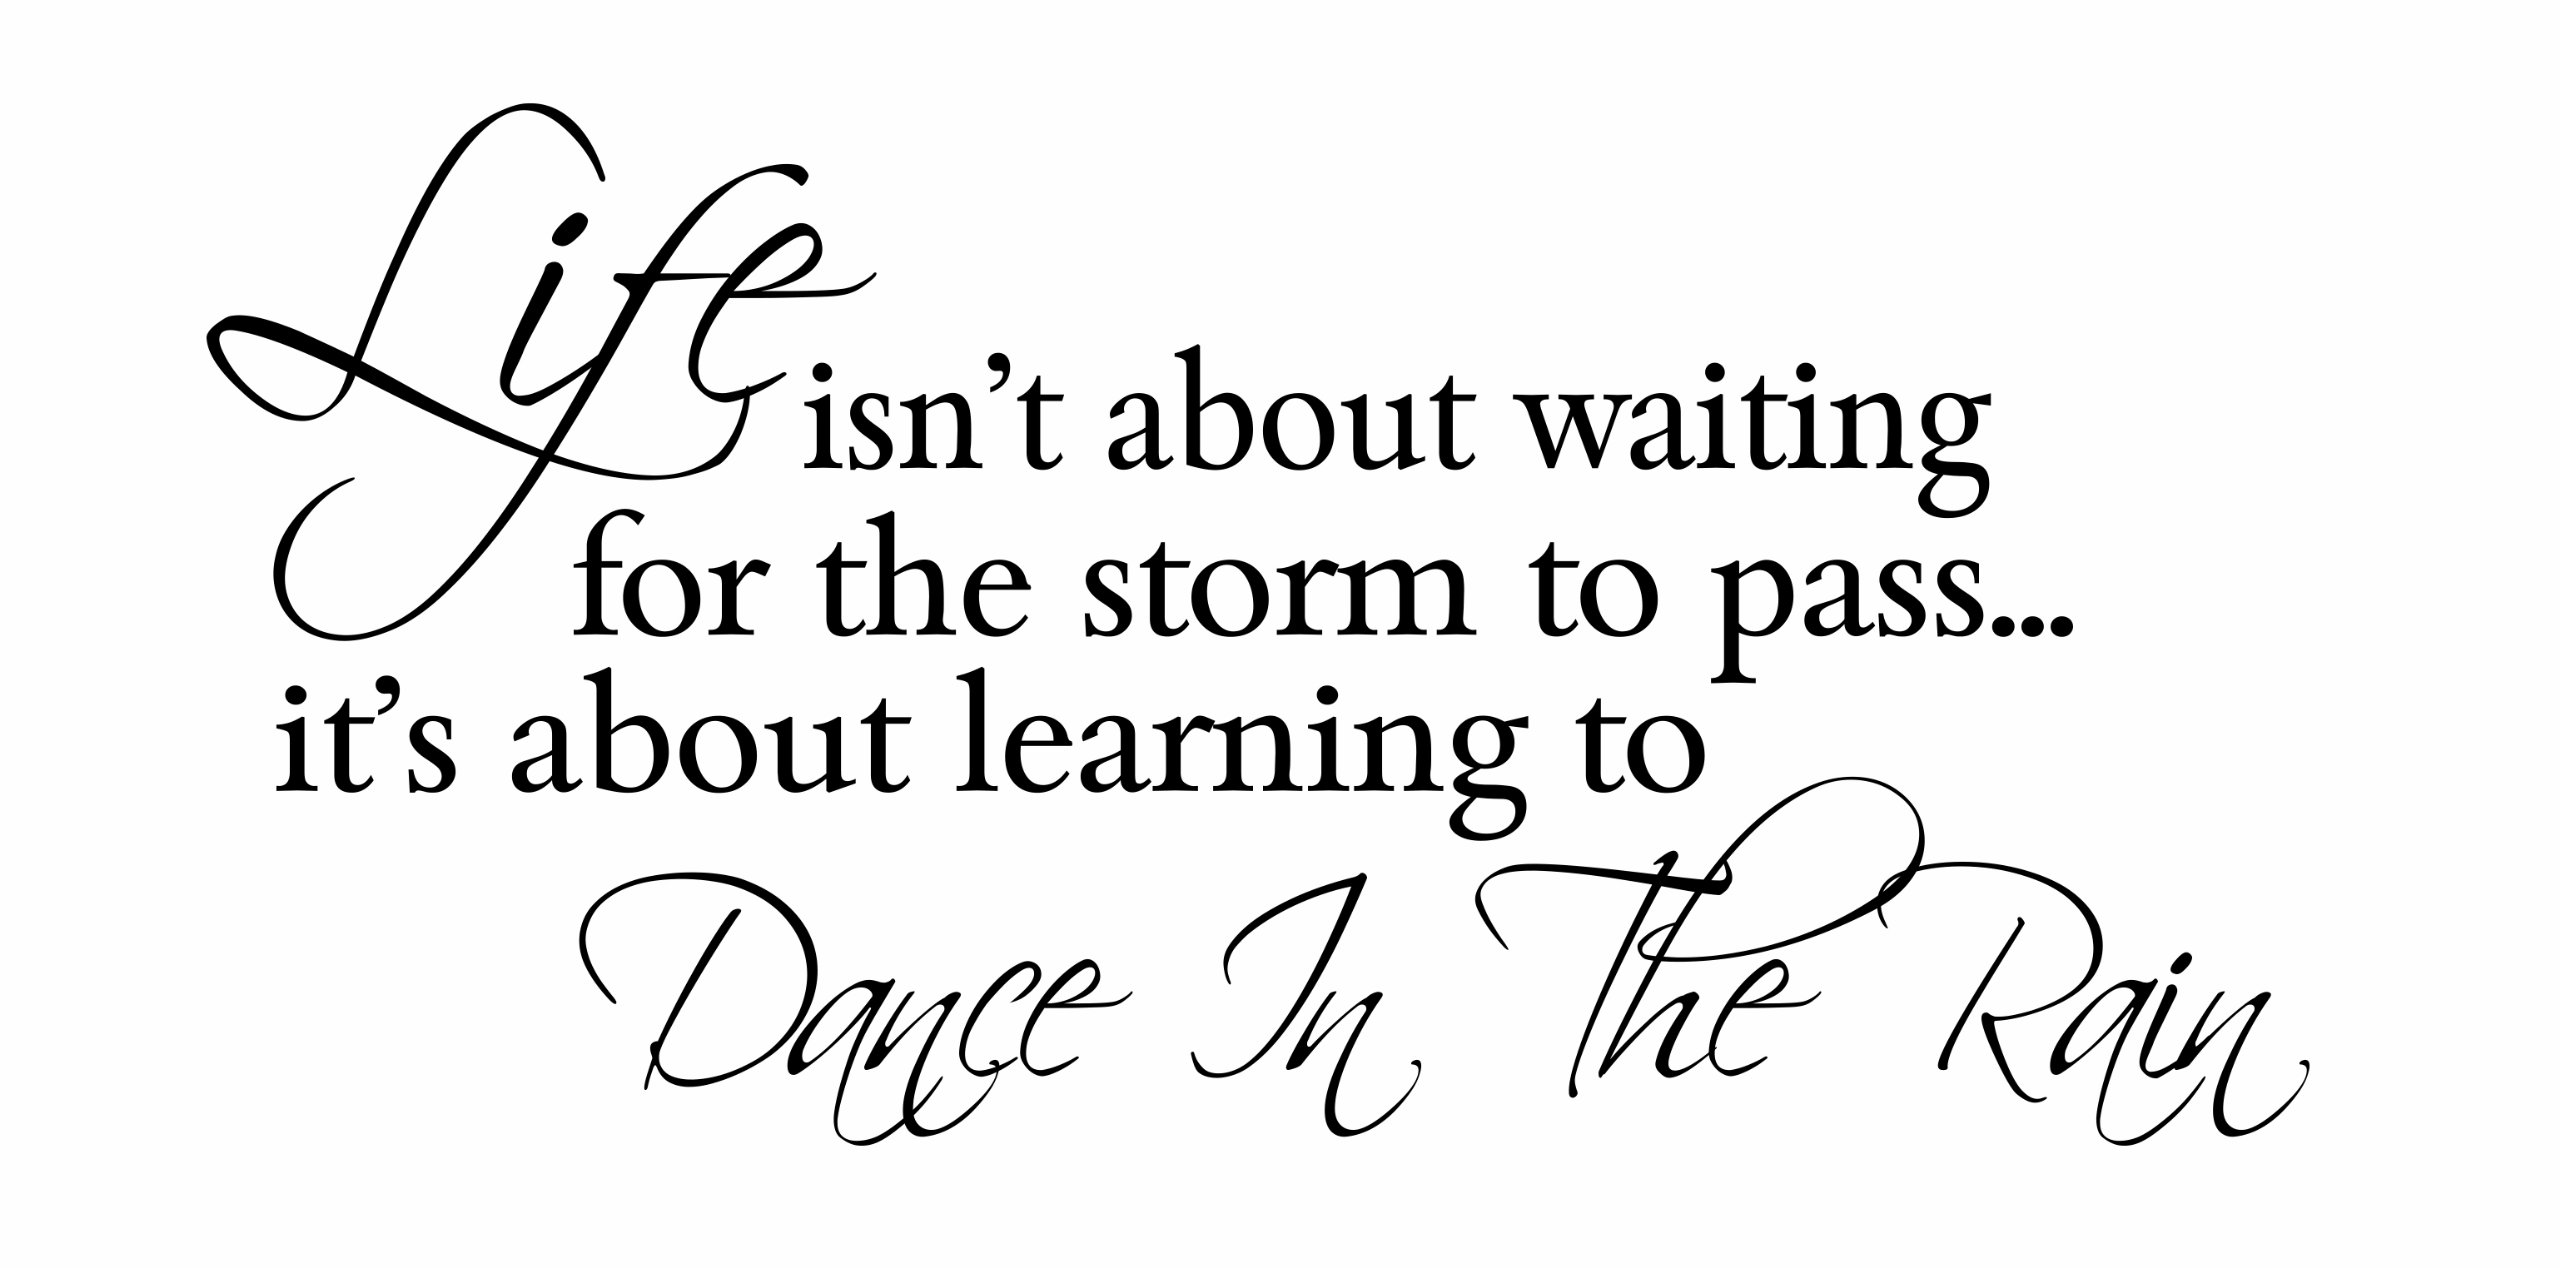 Life Isn't About Waiting for the Strom to Pass It's About Learning to Dance in the Rain Quote Wall Decal (LARGE) Quote Sticker Art Decor Living Room by Lovely Decals World LLC